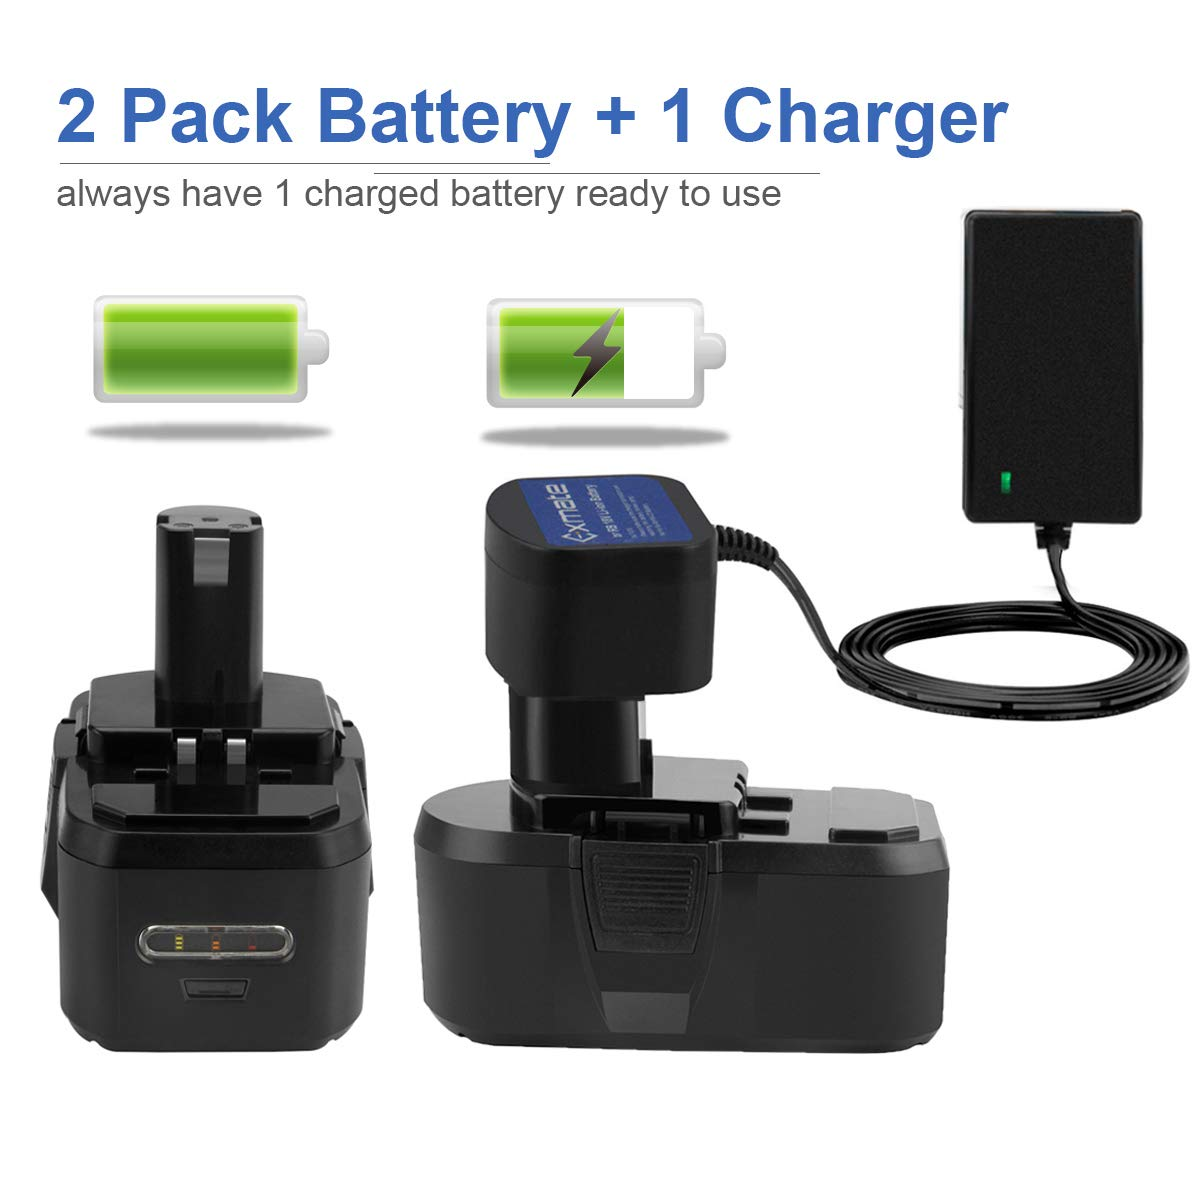 Exmate 2 Pack 18V 3.5Ah Ni-MH Battery with Multivolt 1.2V-18V Ni-MH//Ni-Cd Charger for Ryobi ONE P100 P107 P108 P122 P104 P105 P102 P103